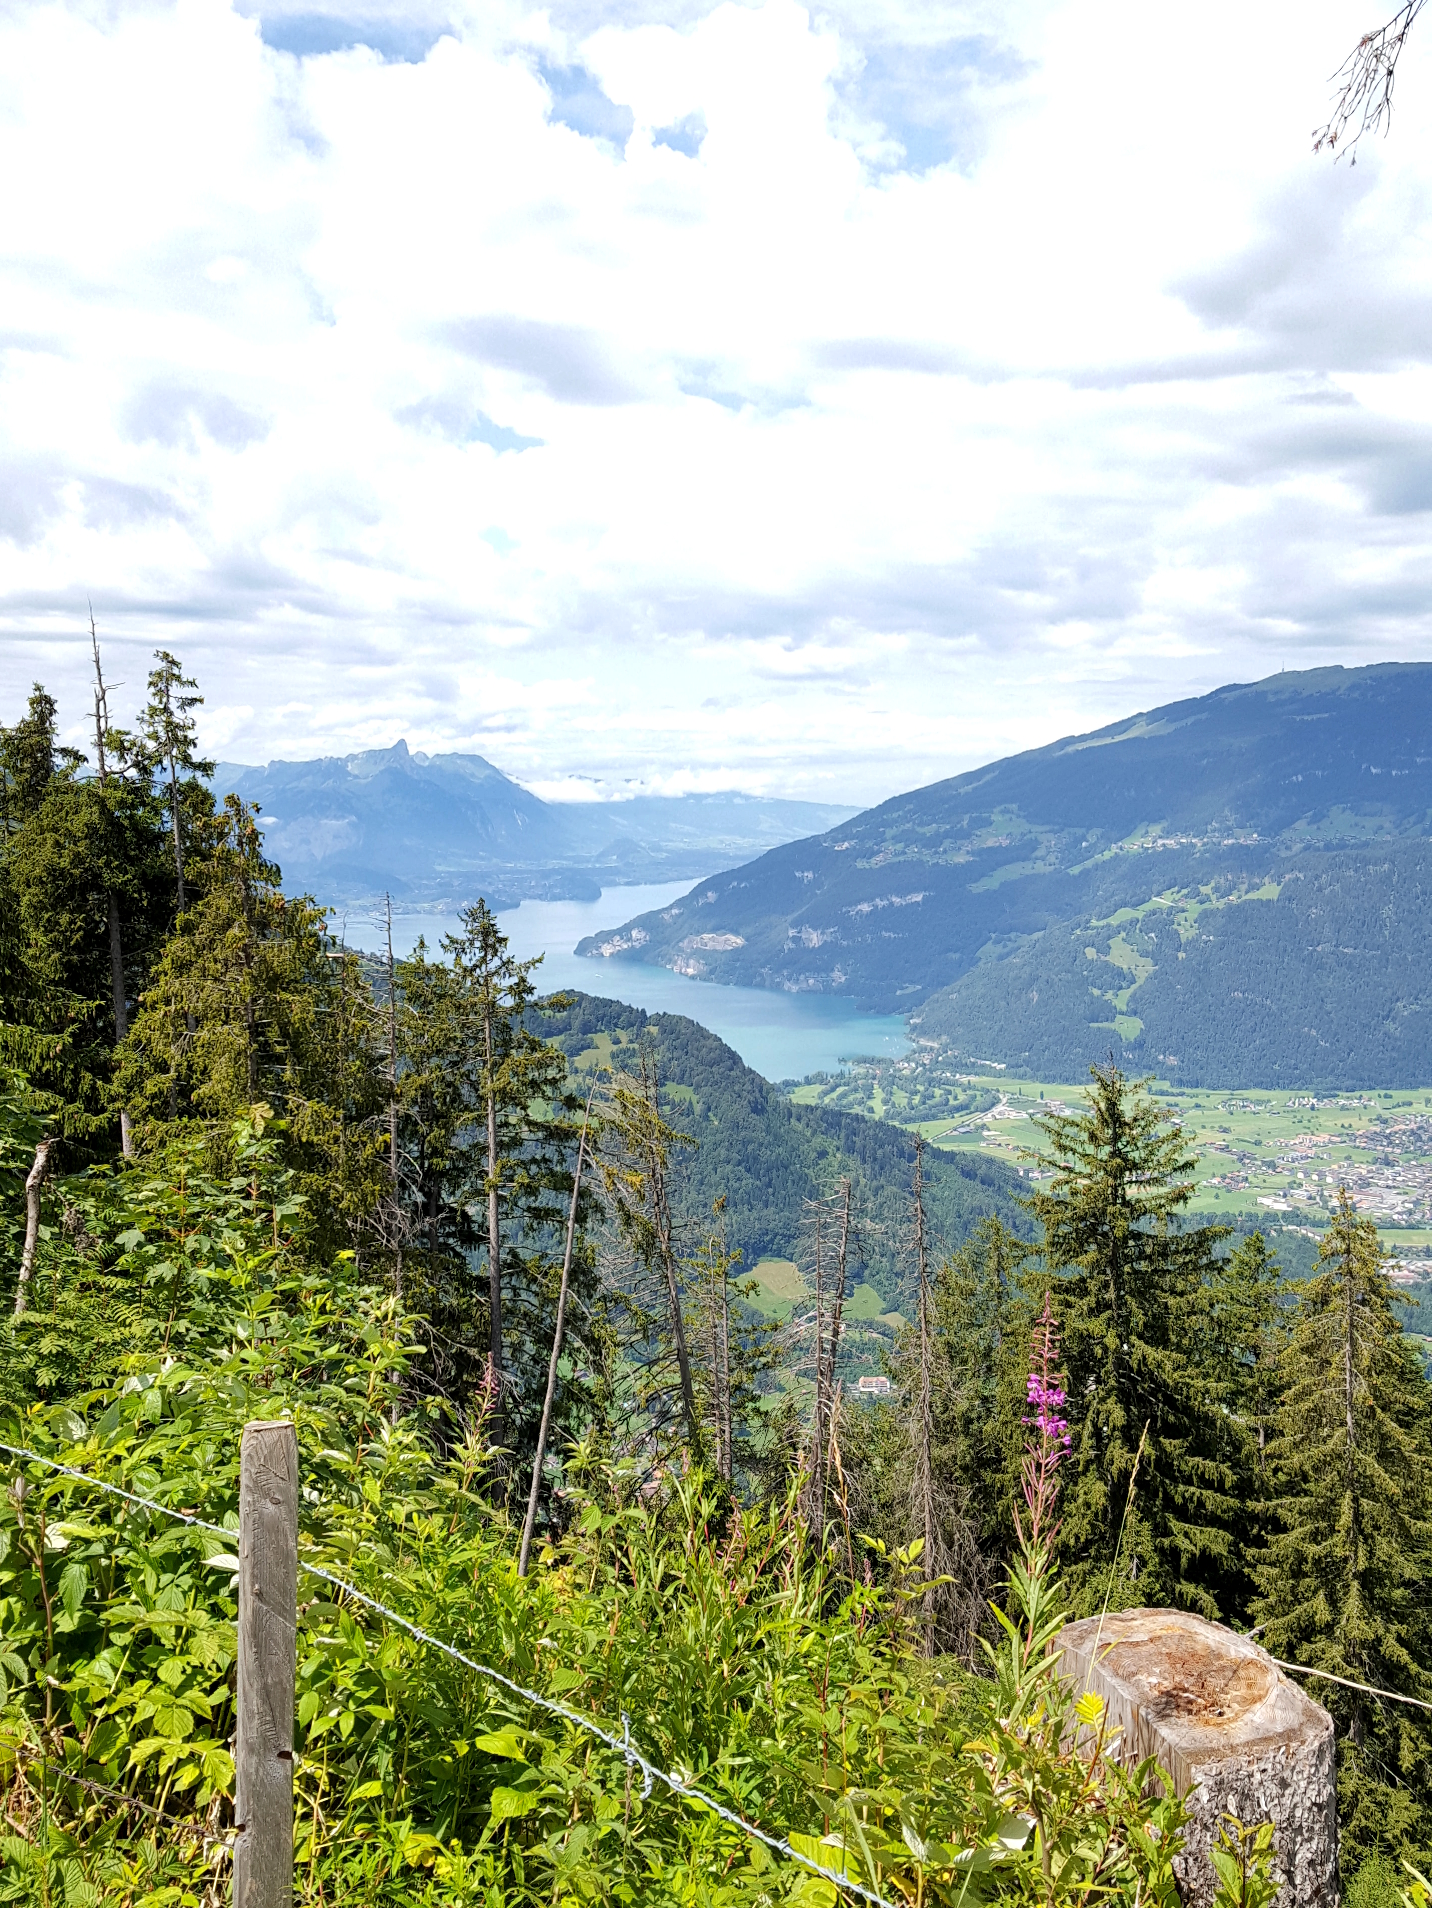 View over Interlaken and Lake Thun on a hike to Schynige Platte in the Bernese Oberland